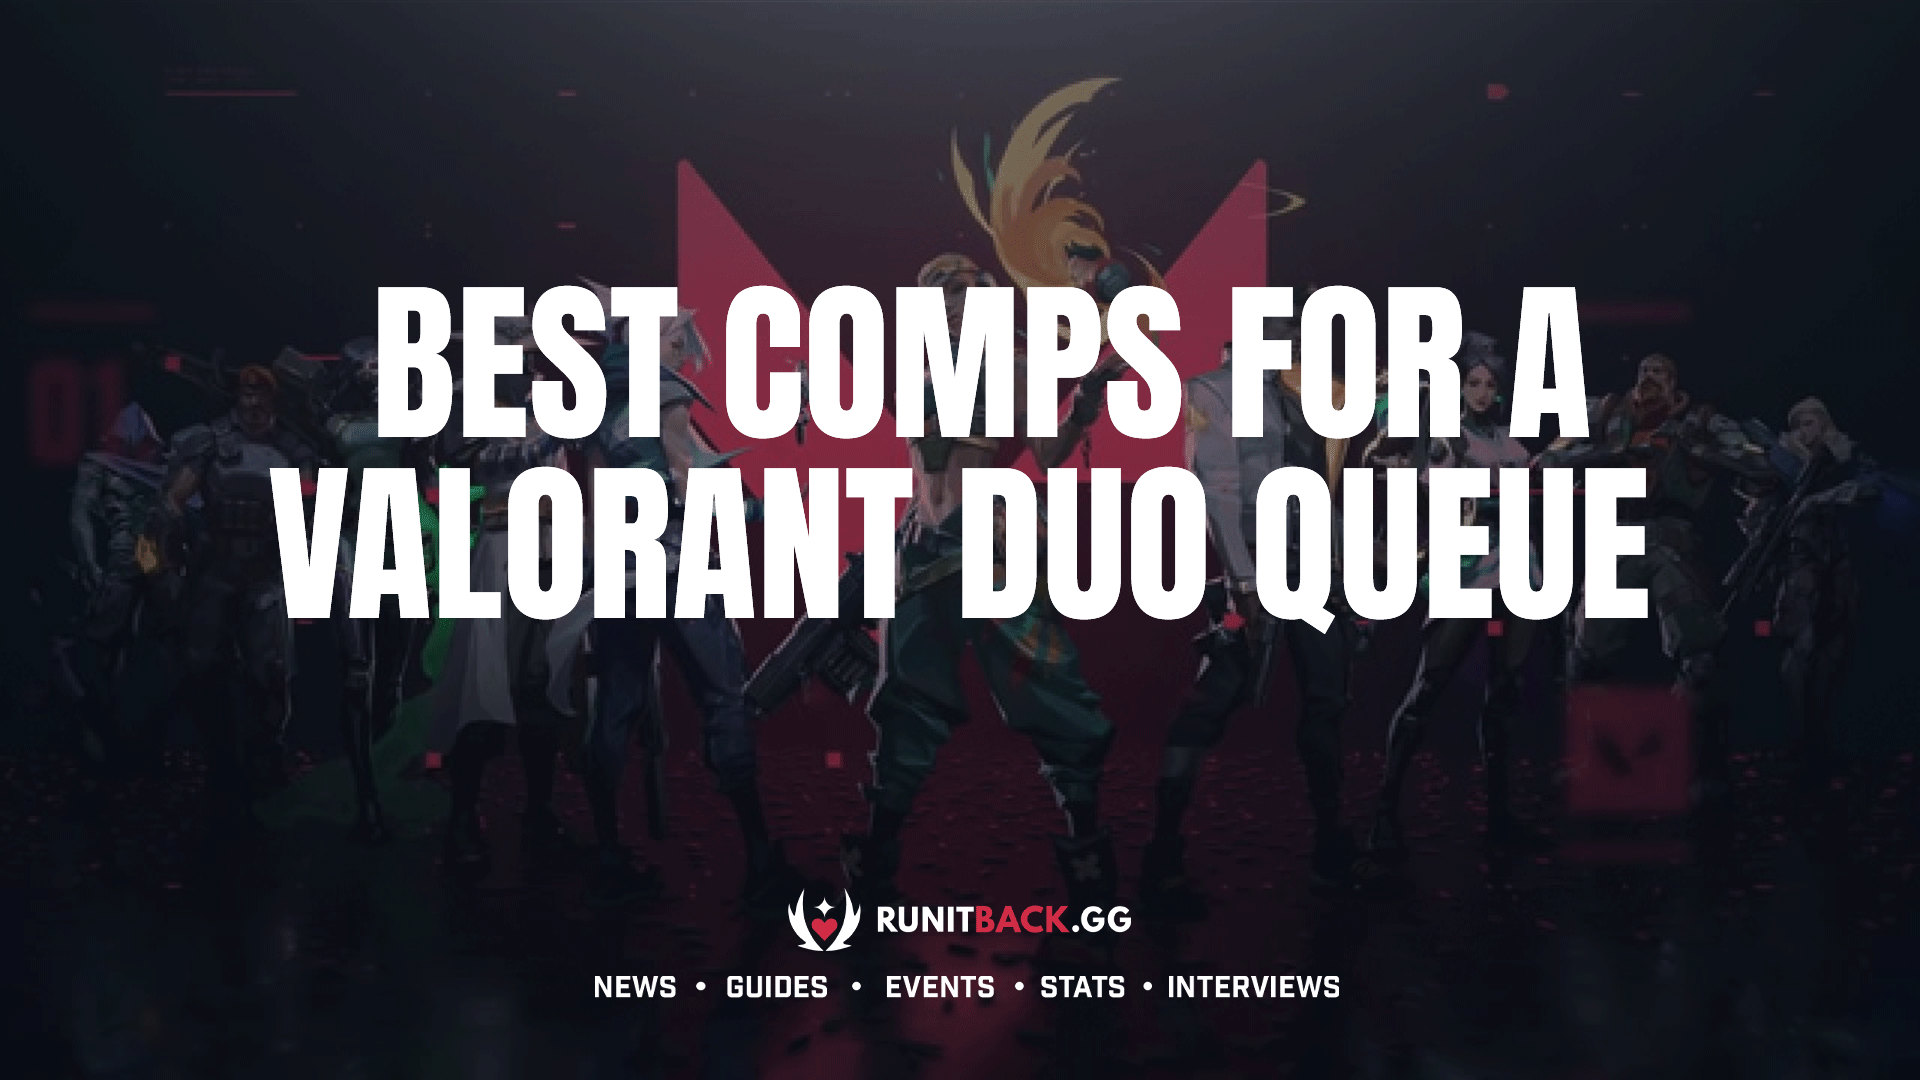 Best comps for a VALORANT duo queue